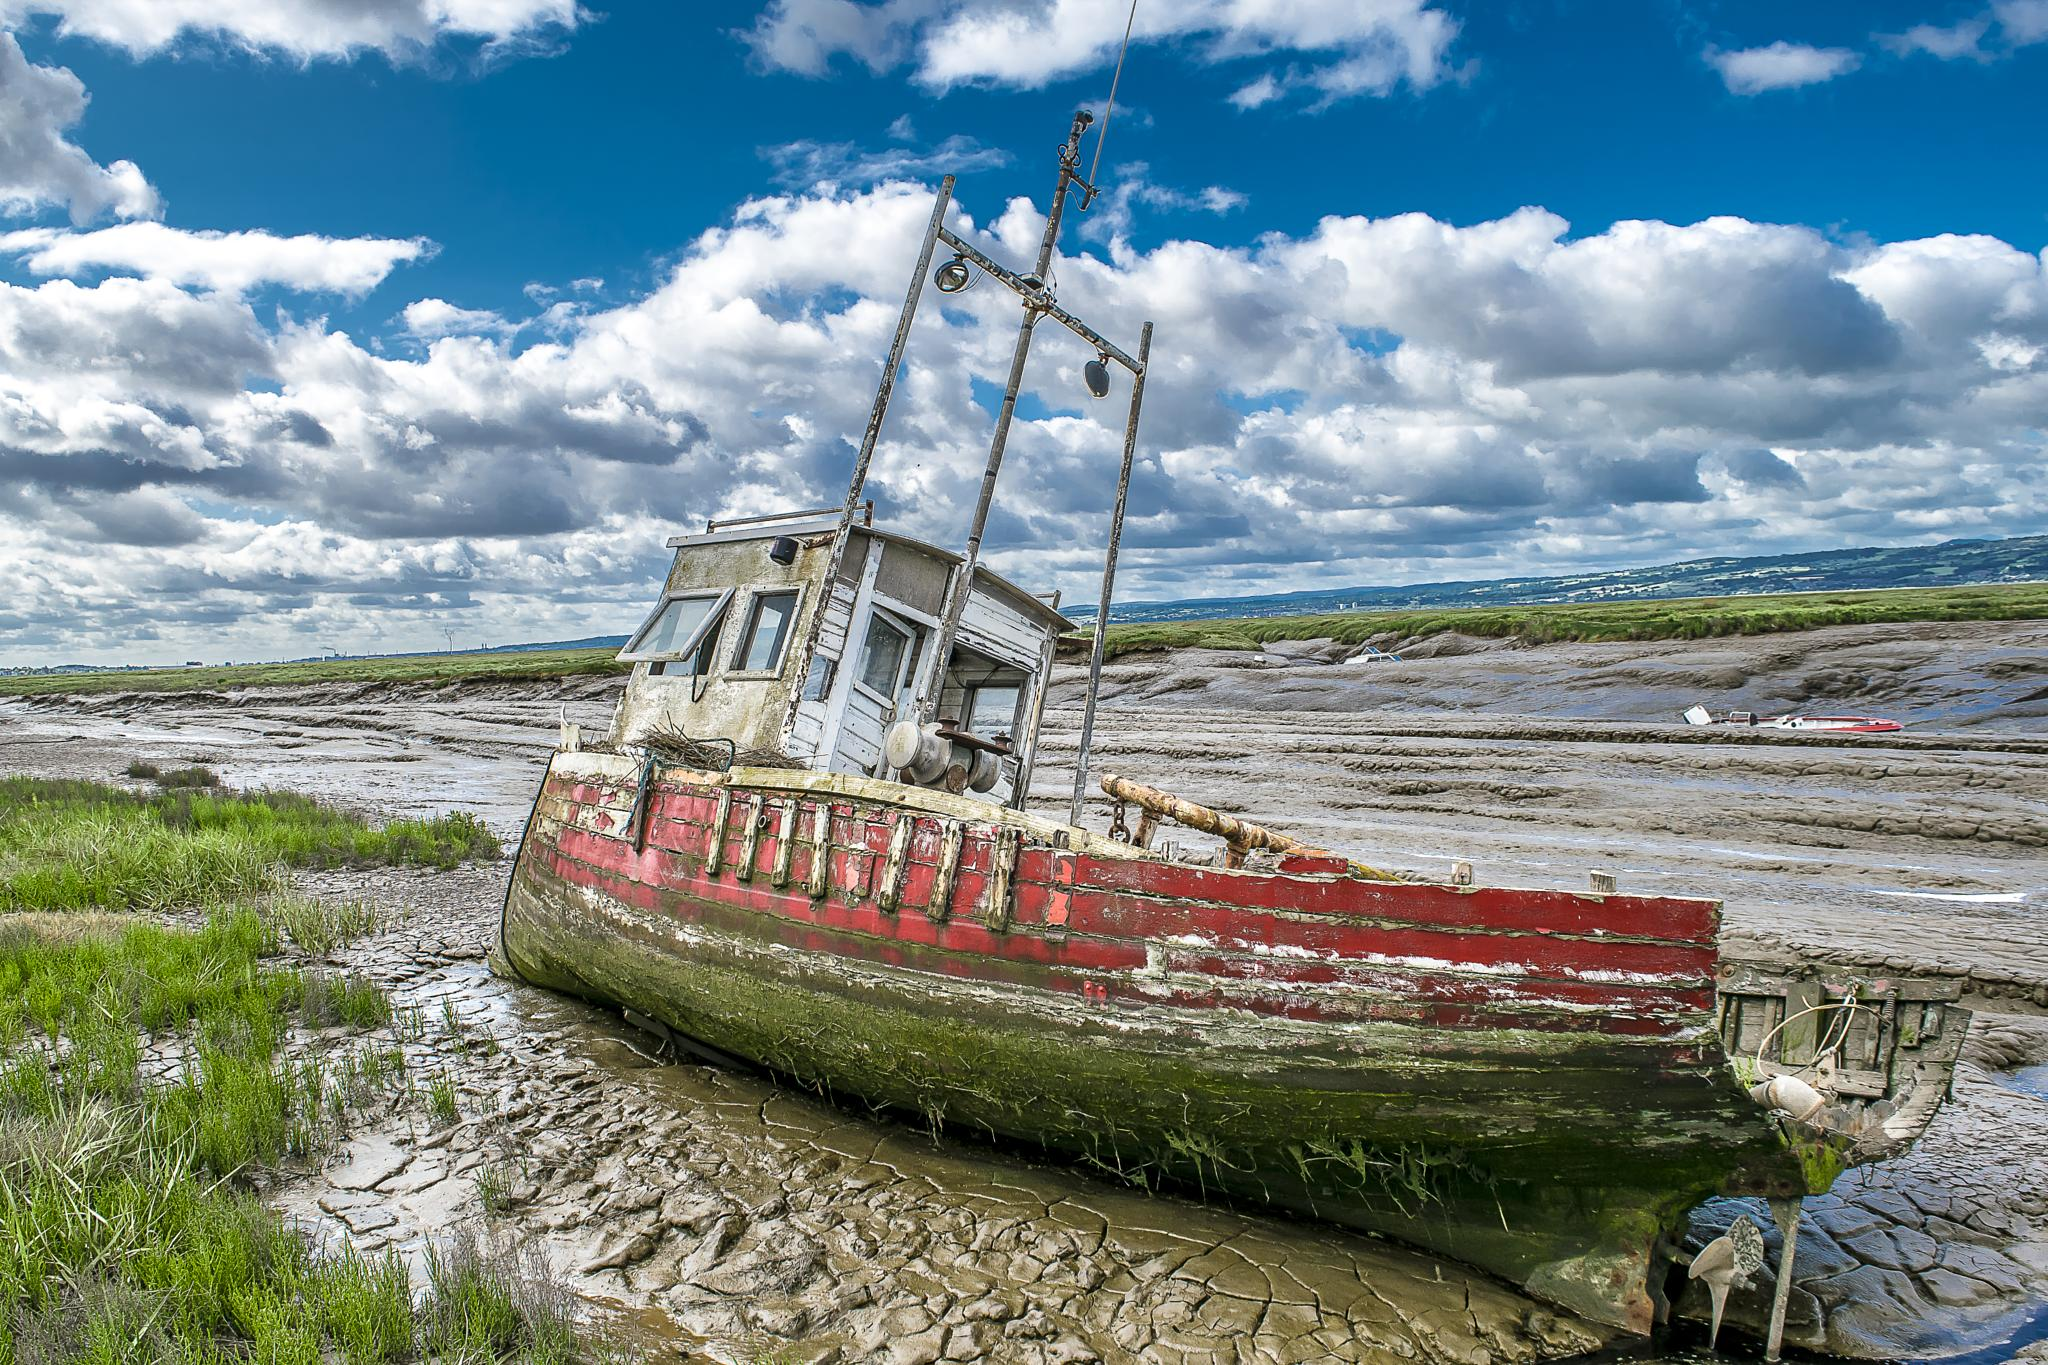 Photo in Landscape #low tide #dry dock #boats #ships #water #sea #mud #mud flats #red boat #samphire #ship wreck #wrecked #abandoned #moss #prop shaft #heswall #wirral